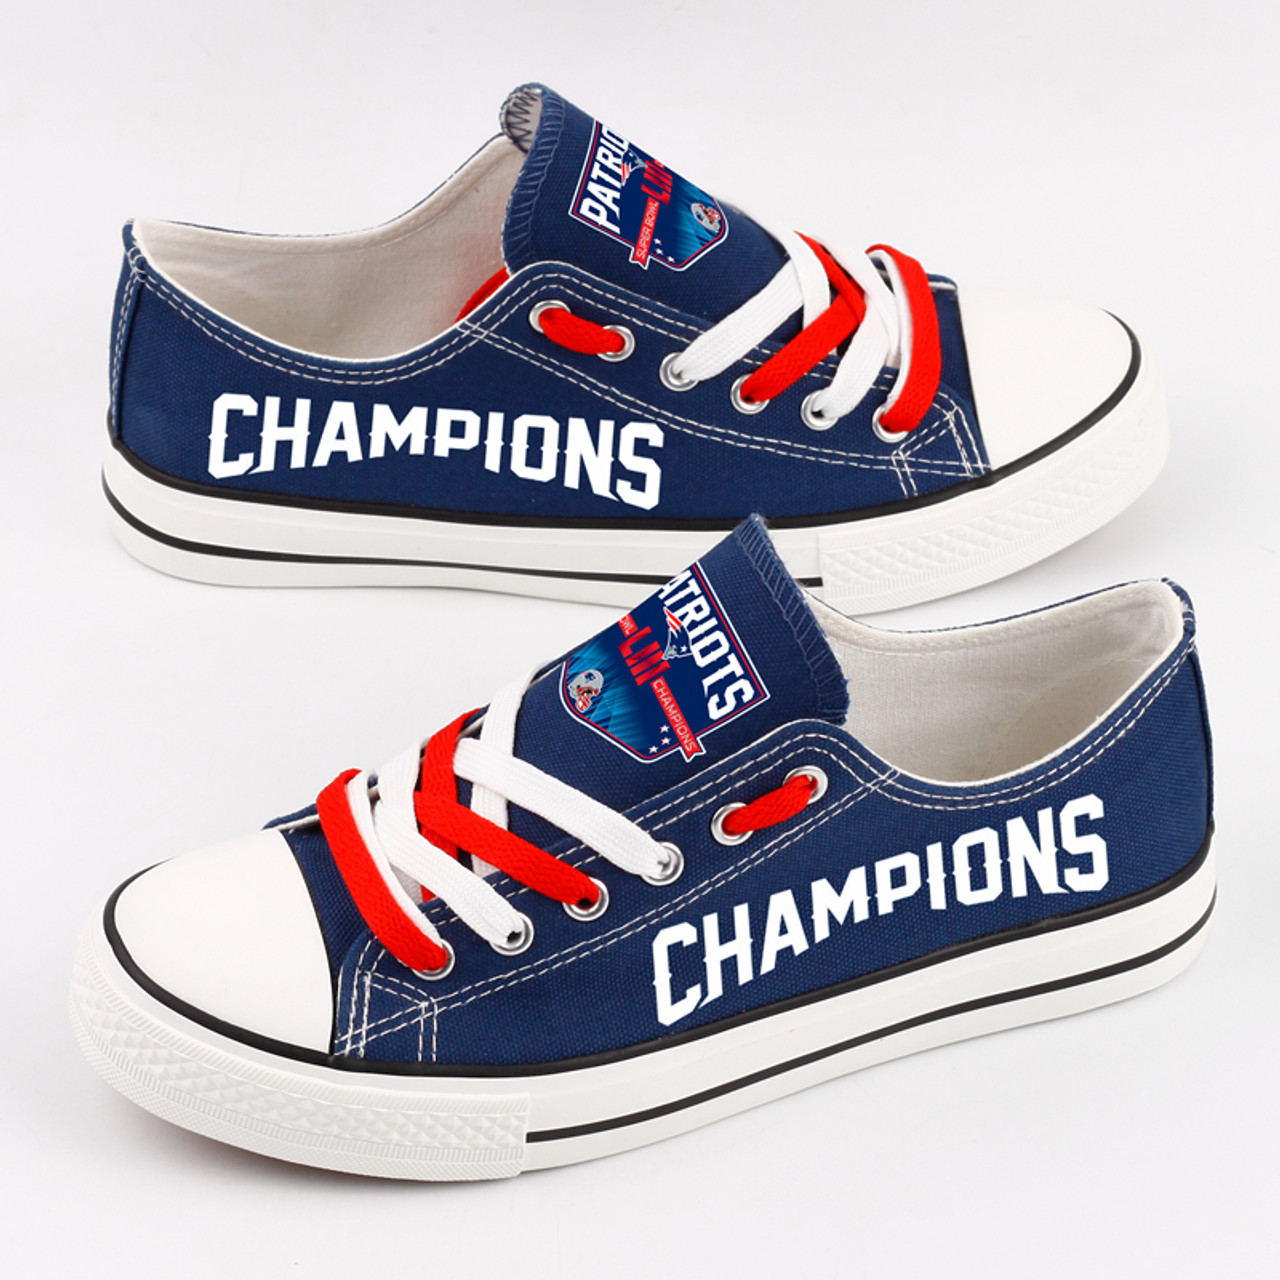 ccc2a30e **(OFFICIALLY-LICENSED-N.F.L.NEW-ENGLAND-PATRIOTS-SUPER-BOWL-CHAMPIONS-RUNNING-SHOES/MENS-OR-WOMENS-ROSHE-STYLE,LIGHT-WEIGHT-SPORT-PREMIUM-RUNNING-SHO...